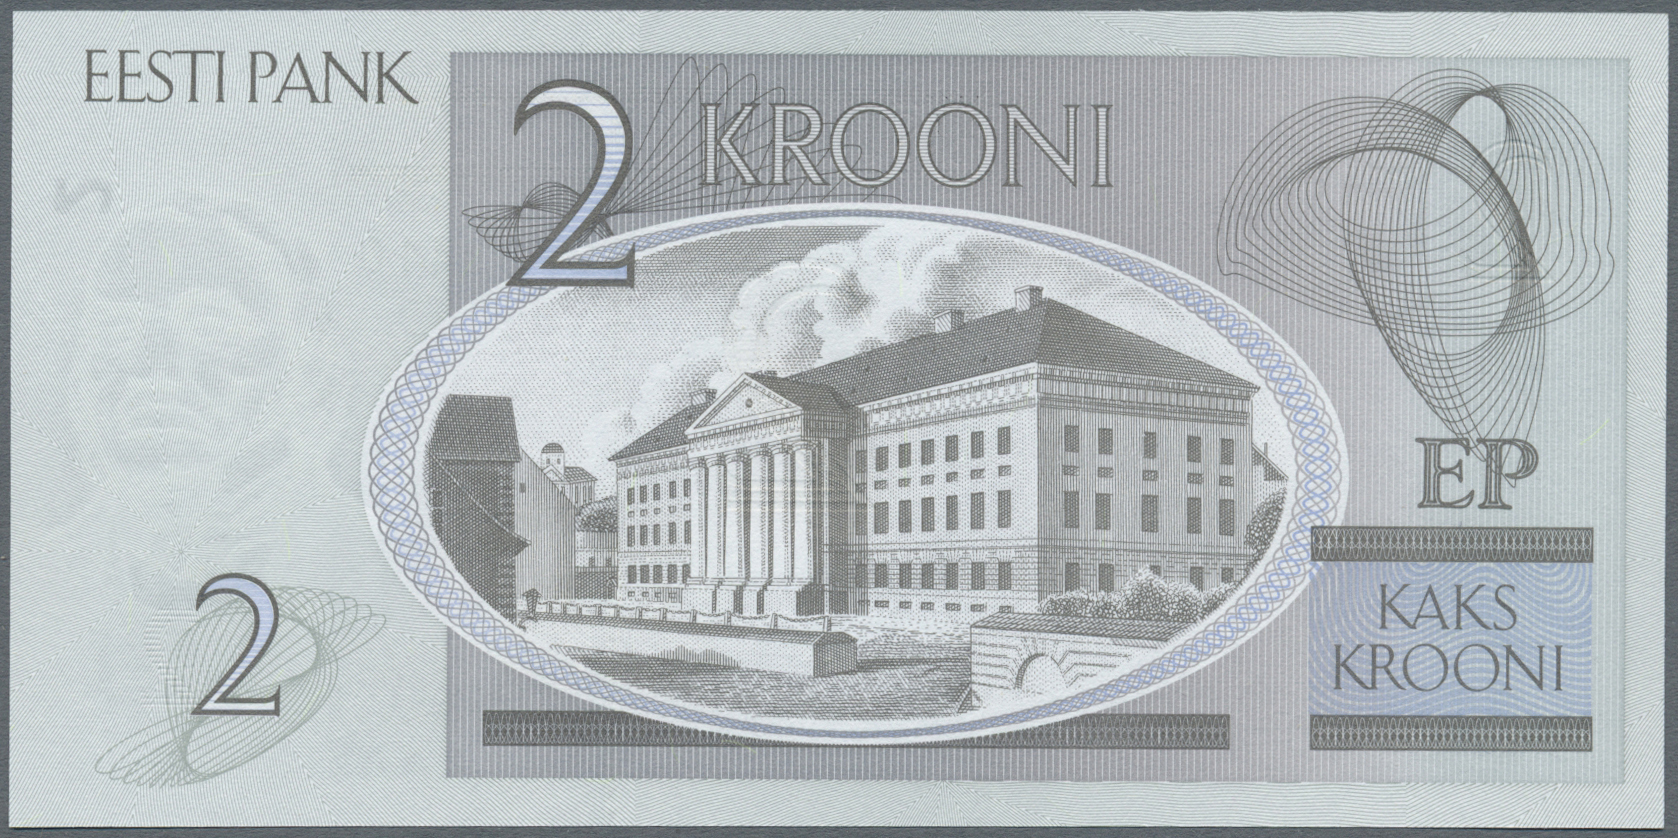 Lot 01032 - Estonia / Estland | Banknoten  -  Auktionshaus Christoph Gärtner GmbH & Co. KG Sale #48 The Banknotes